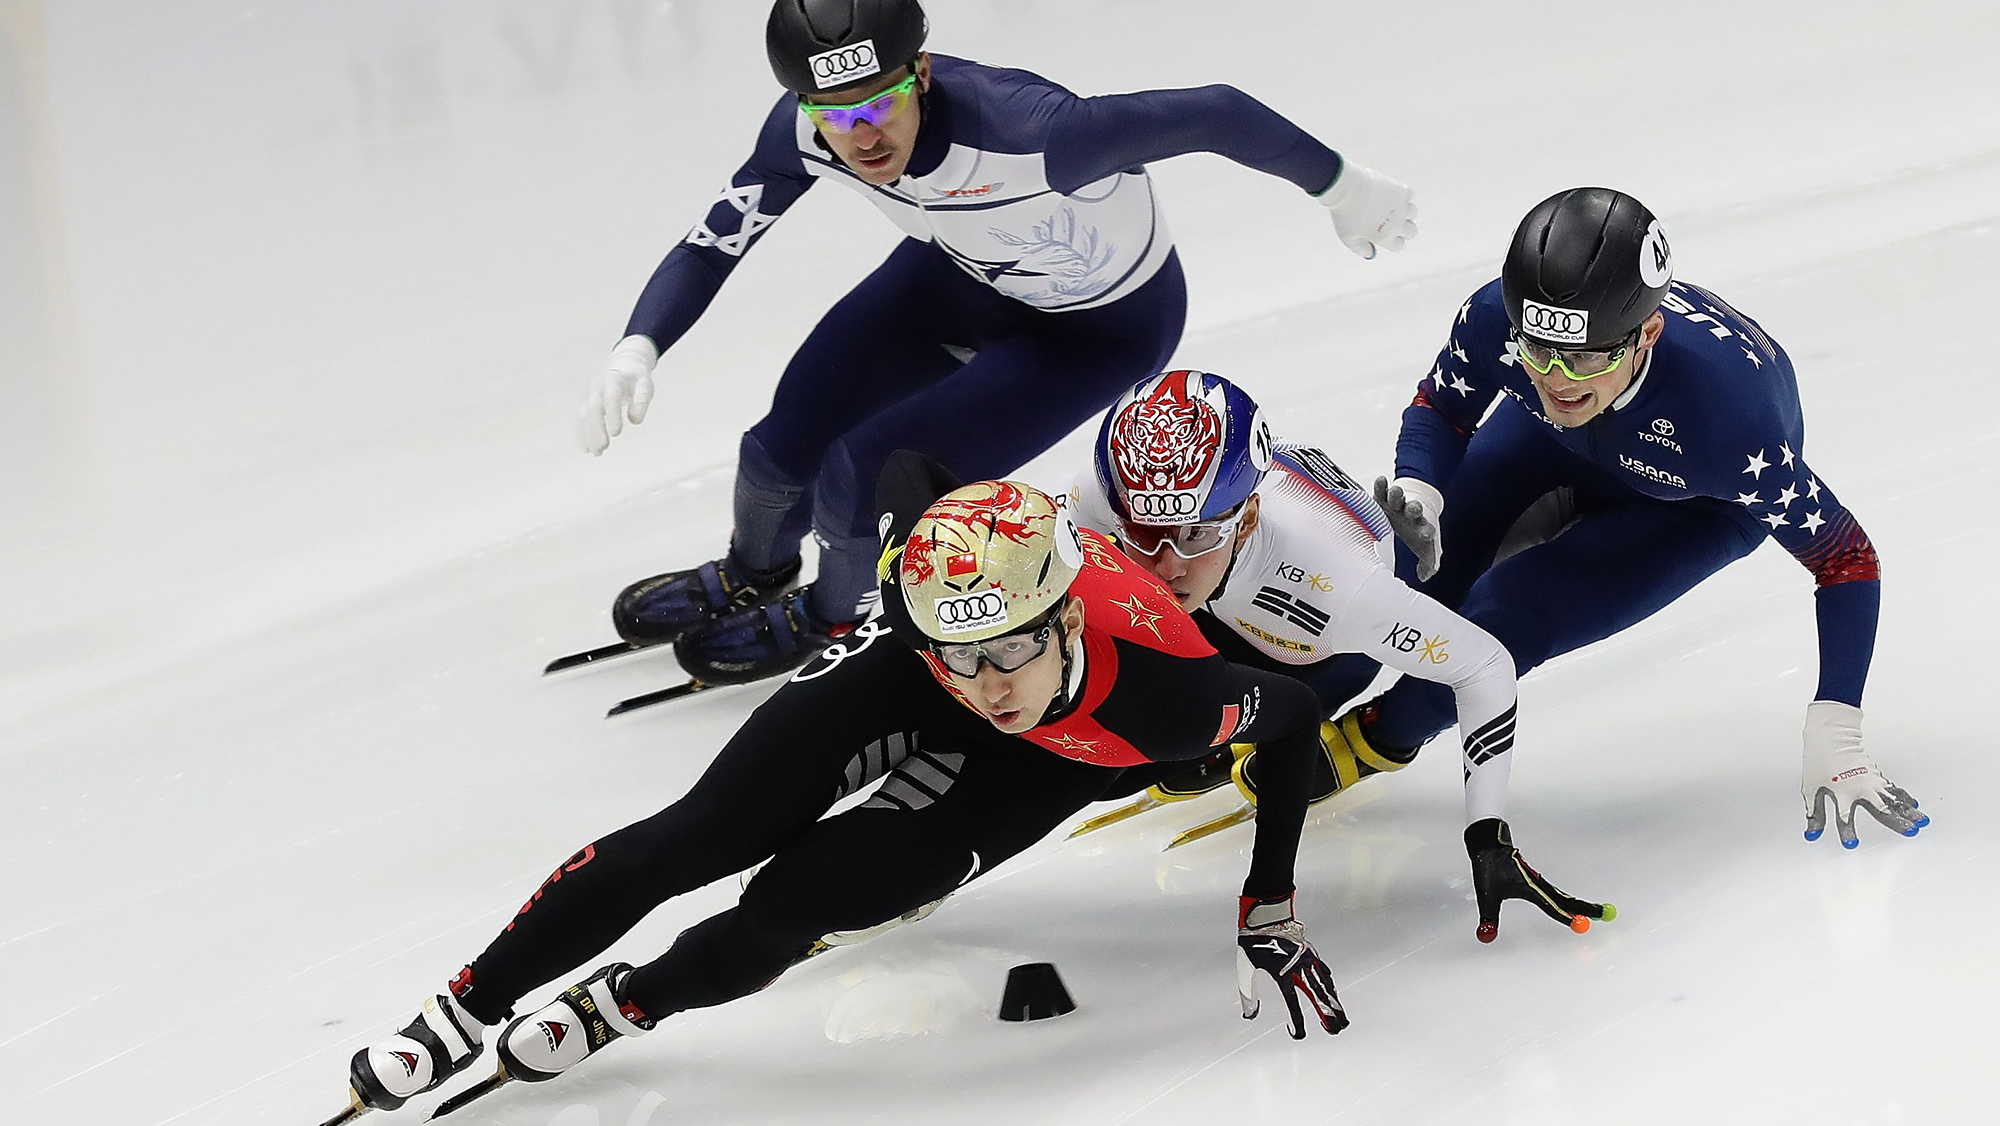 Korea Olympic skaters begin training in South; 1 injured